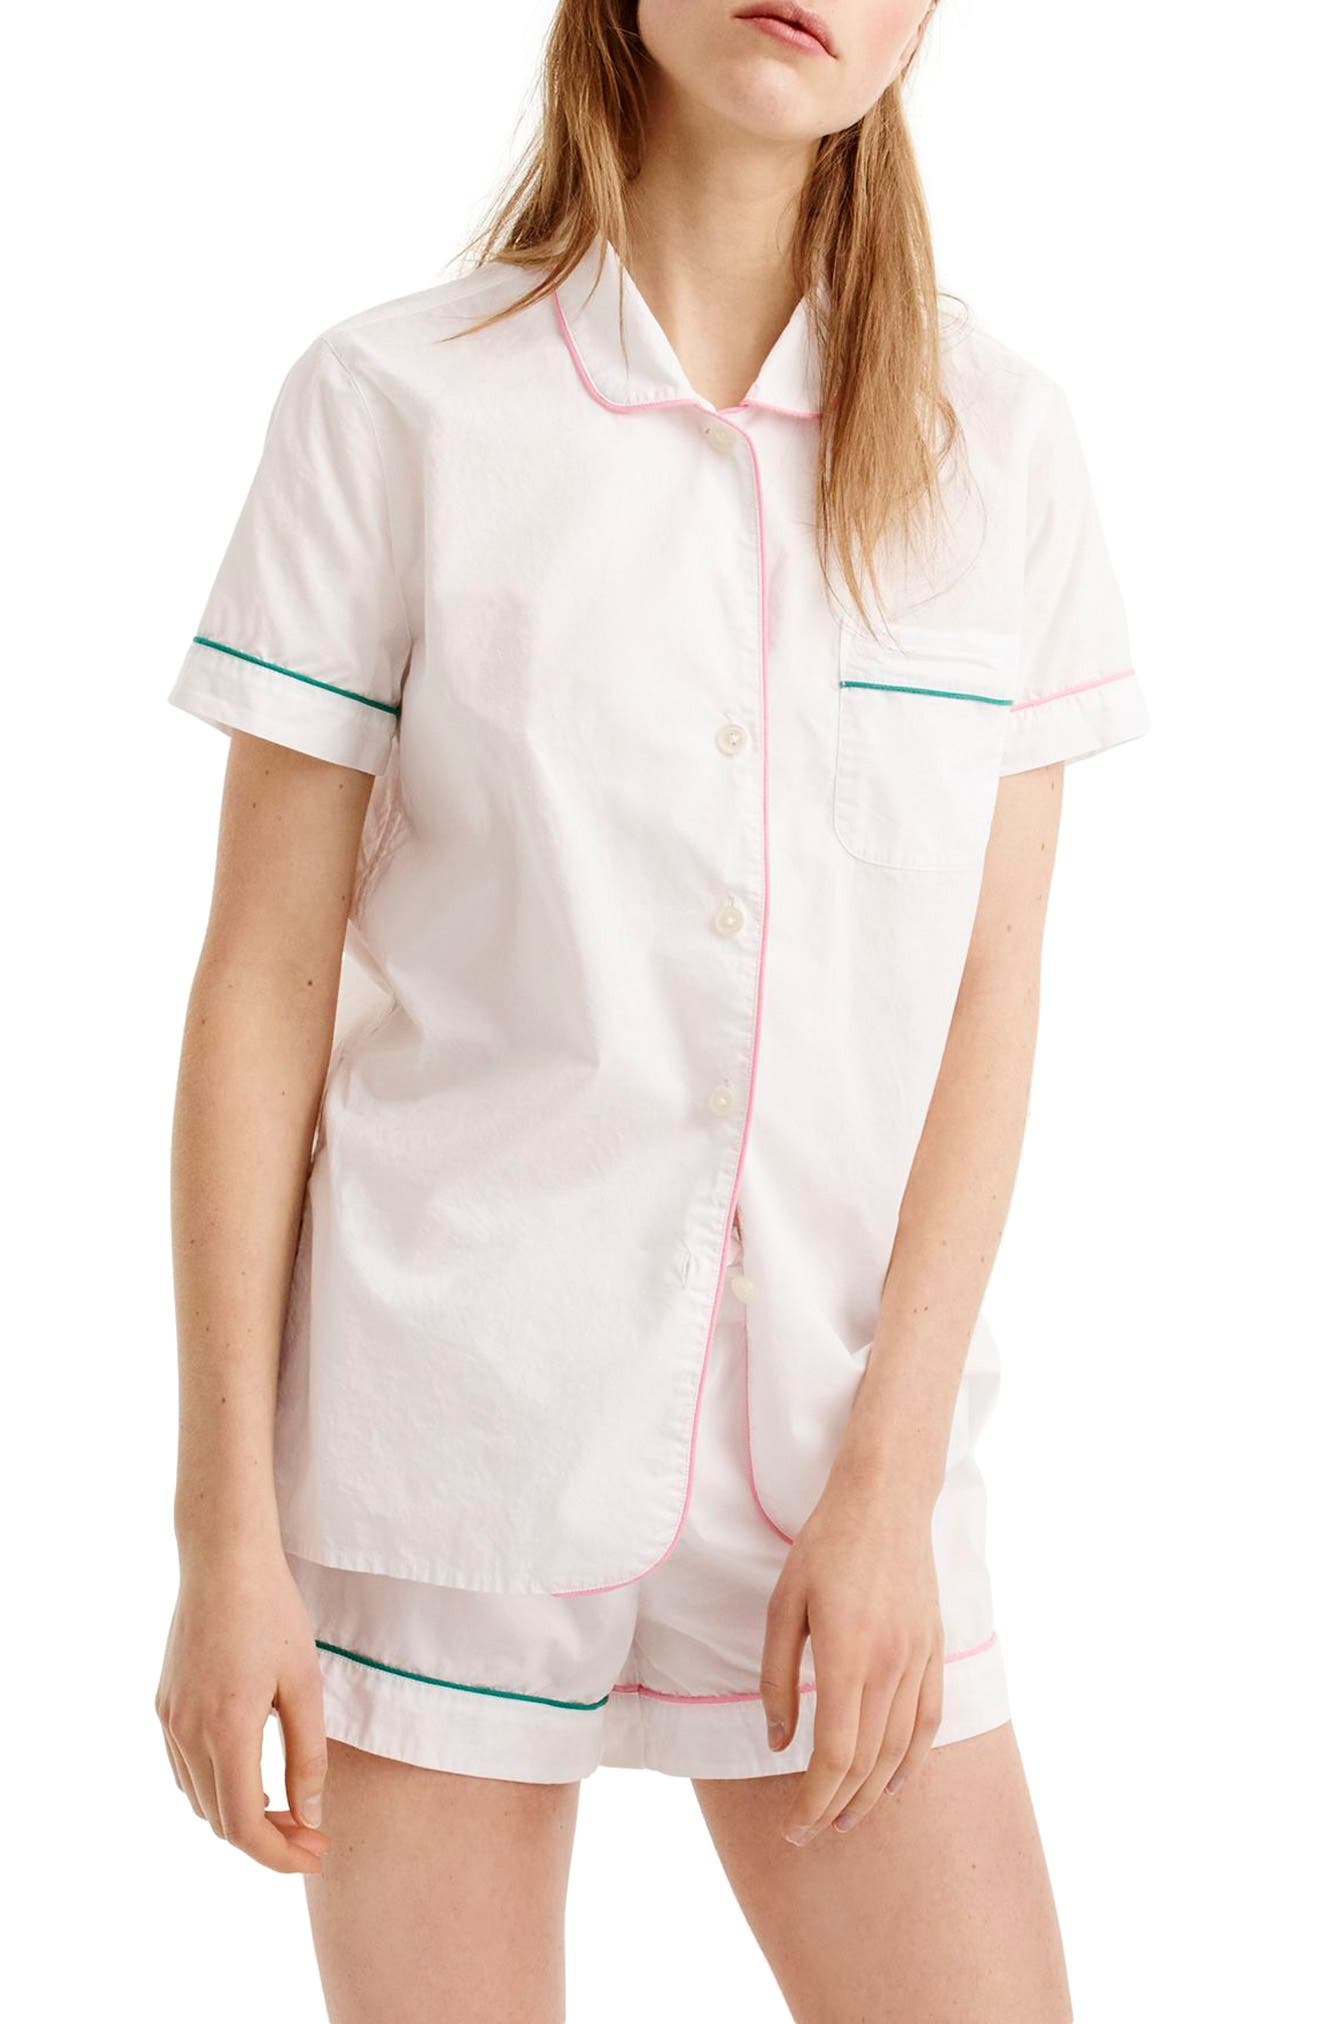 Tipped Short Cotton Pajamas,                         Main,                         color, White Pink Green